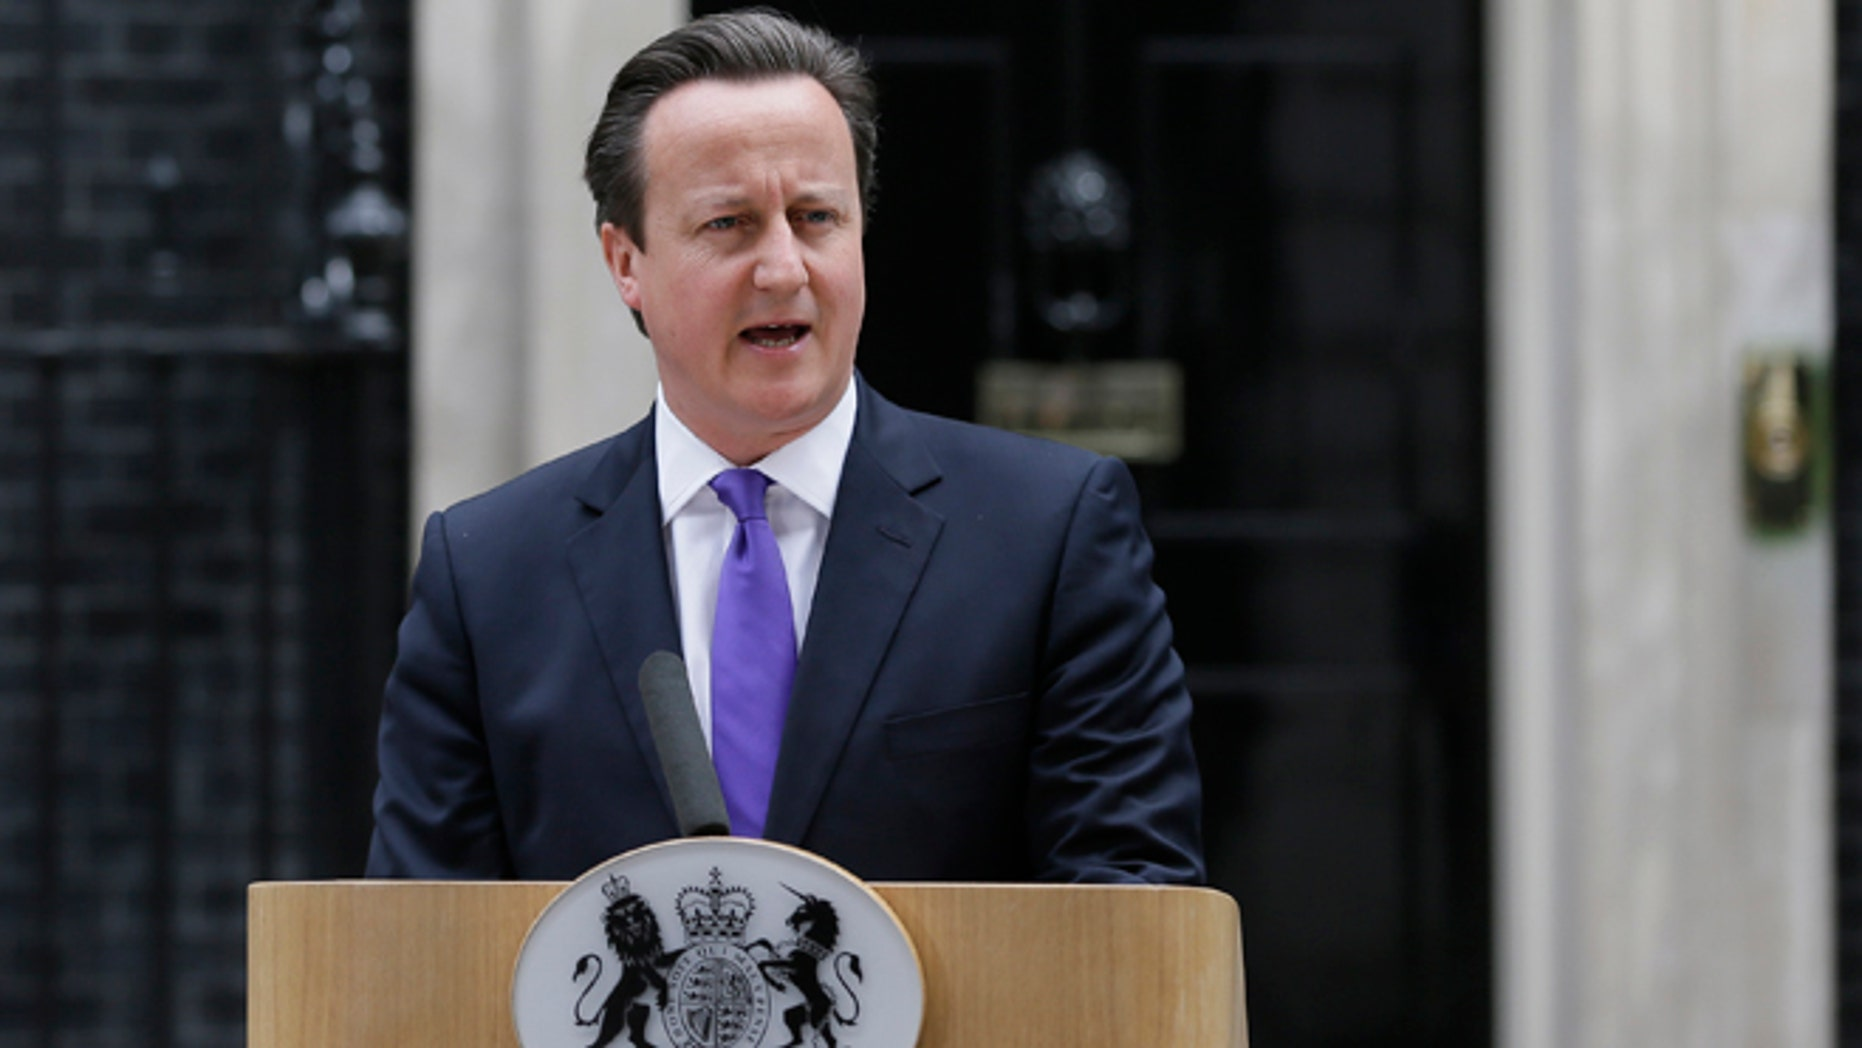 May 23, 2013: Britain's Prime Minister David Cameron speaking to the media outside 10 Downing Street in London. The British government's emergency committee met Thursday after two attackers butchered a British soldier in a daylight attack in London that raised fears terrorism had returned to the capital.